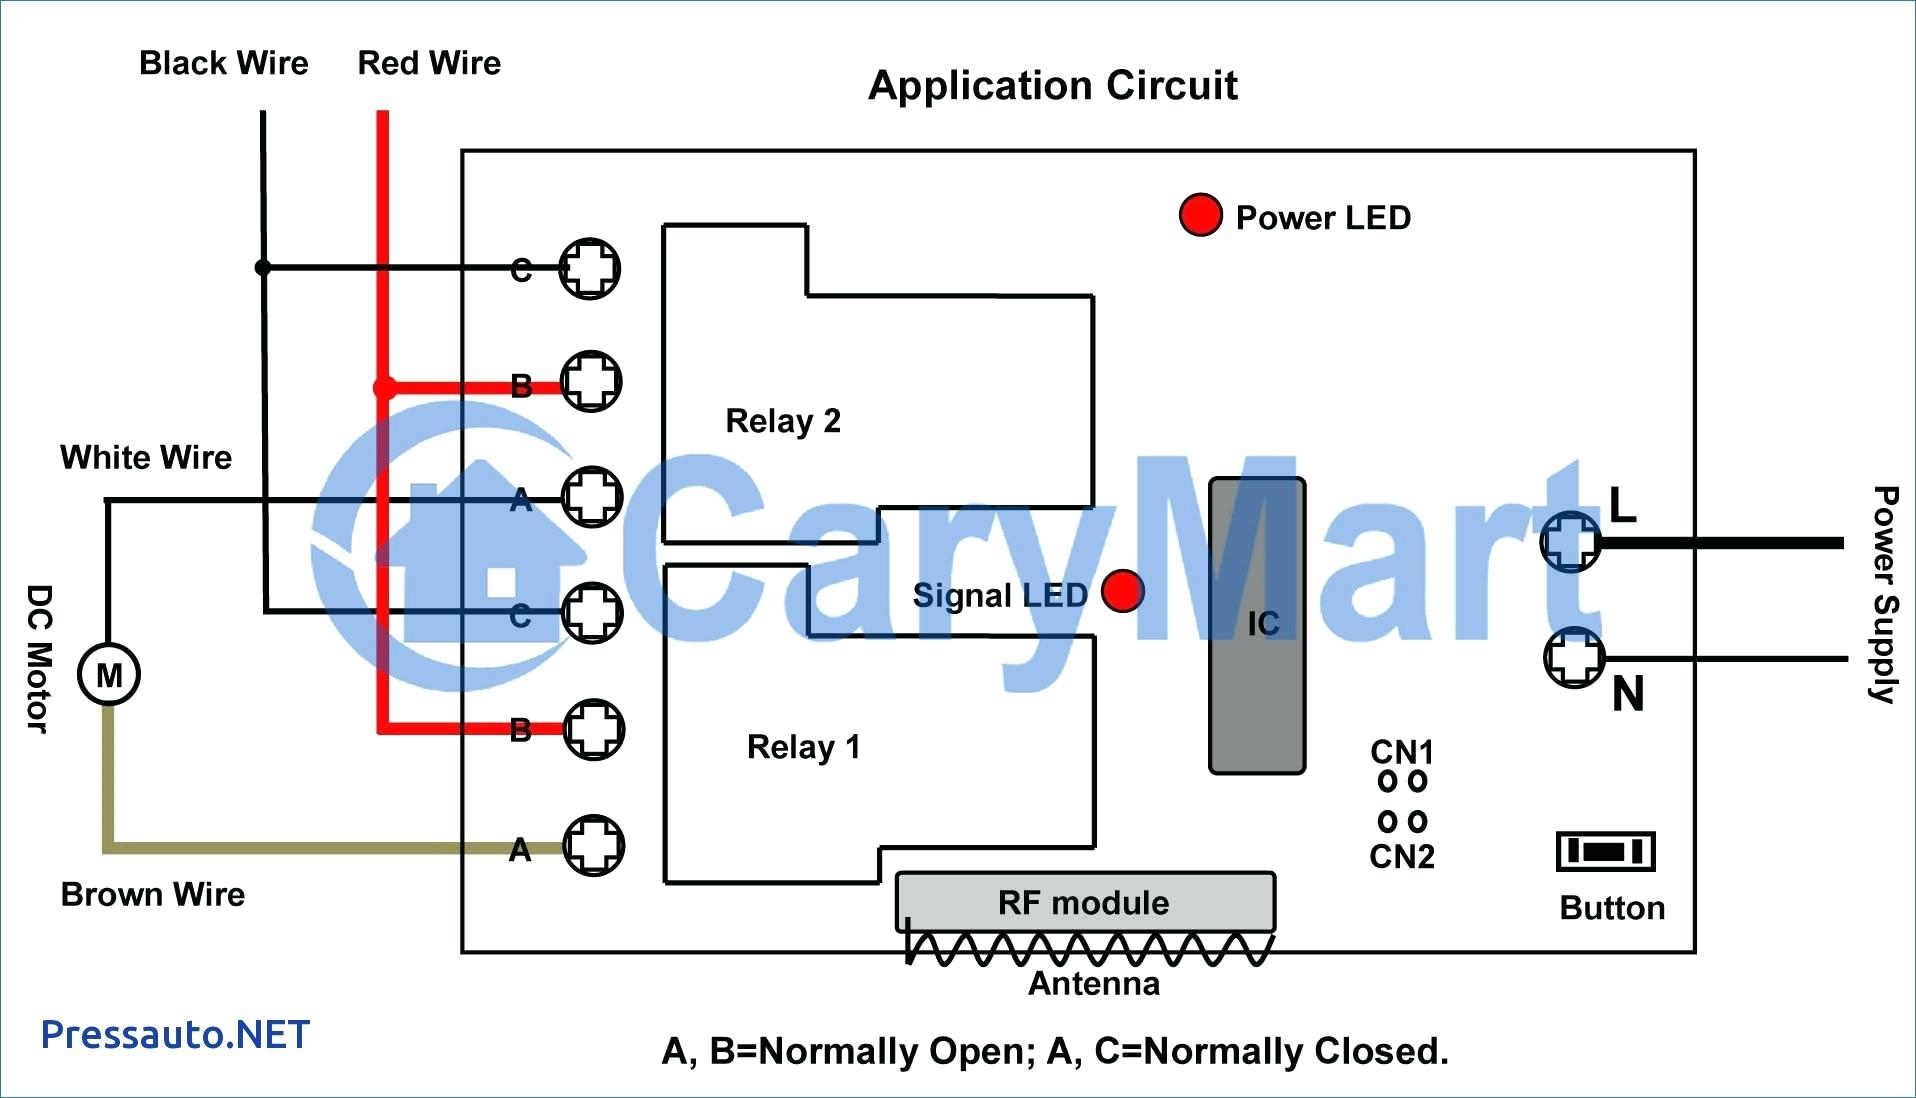 winch wireless remote control wiring diagram Download-Solenoid Switch Wiring Diagram Best Warn Winch Wiring Diagram 3 solenoid Wireless Remote and Switch 10-i